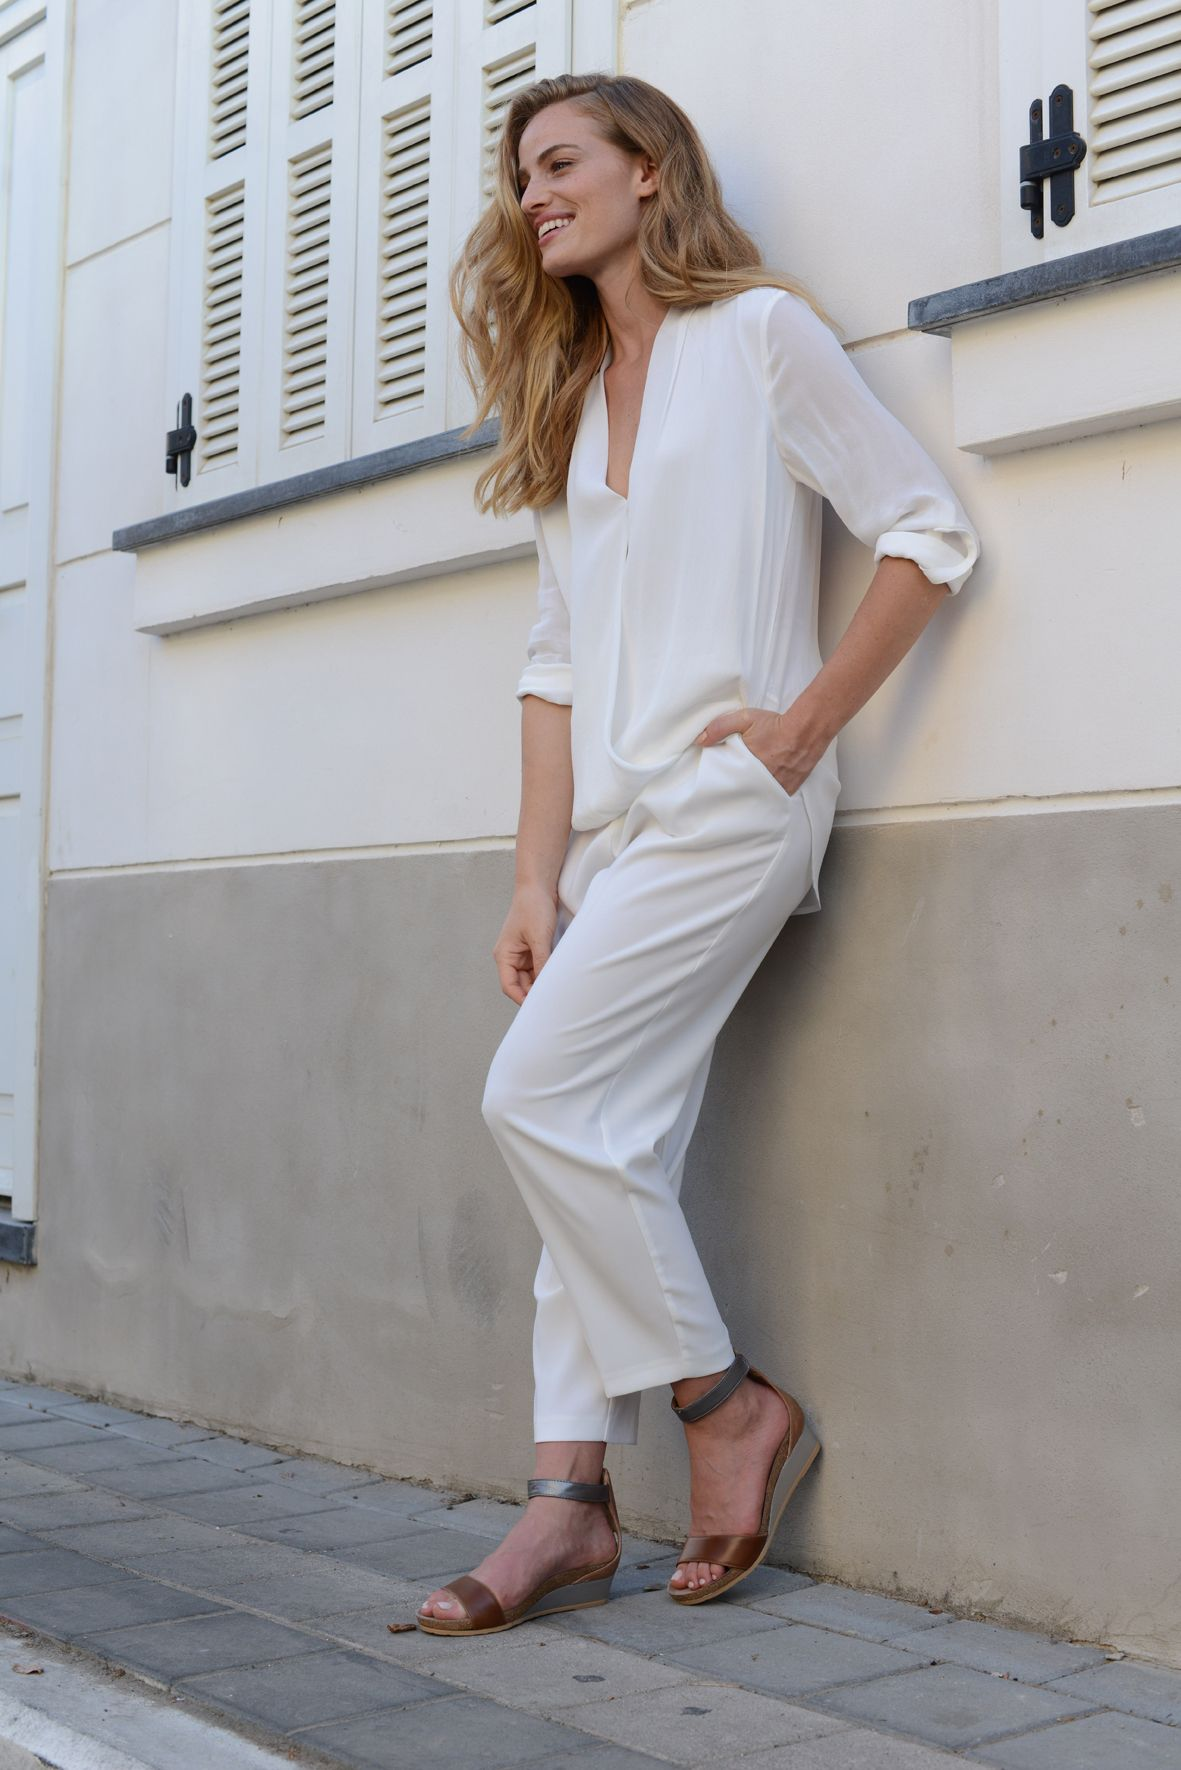 a83cf160c28 NAOT - PIXIE Latte Brown Combo (Lifestyle Image)  NAOT  footwear  sandals   wedges  heels  fashion  comfort  stroll  letsgoshopping  stylish  allwhite